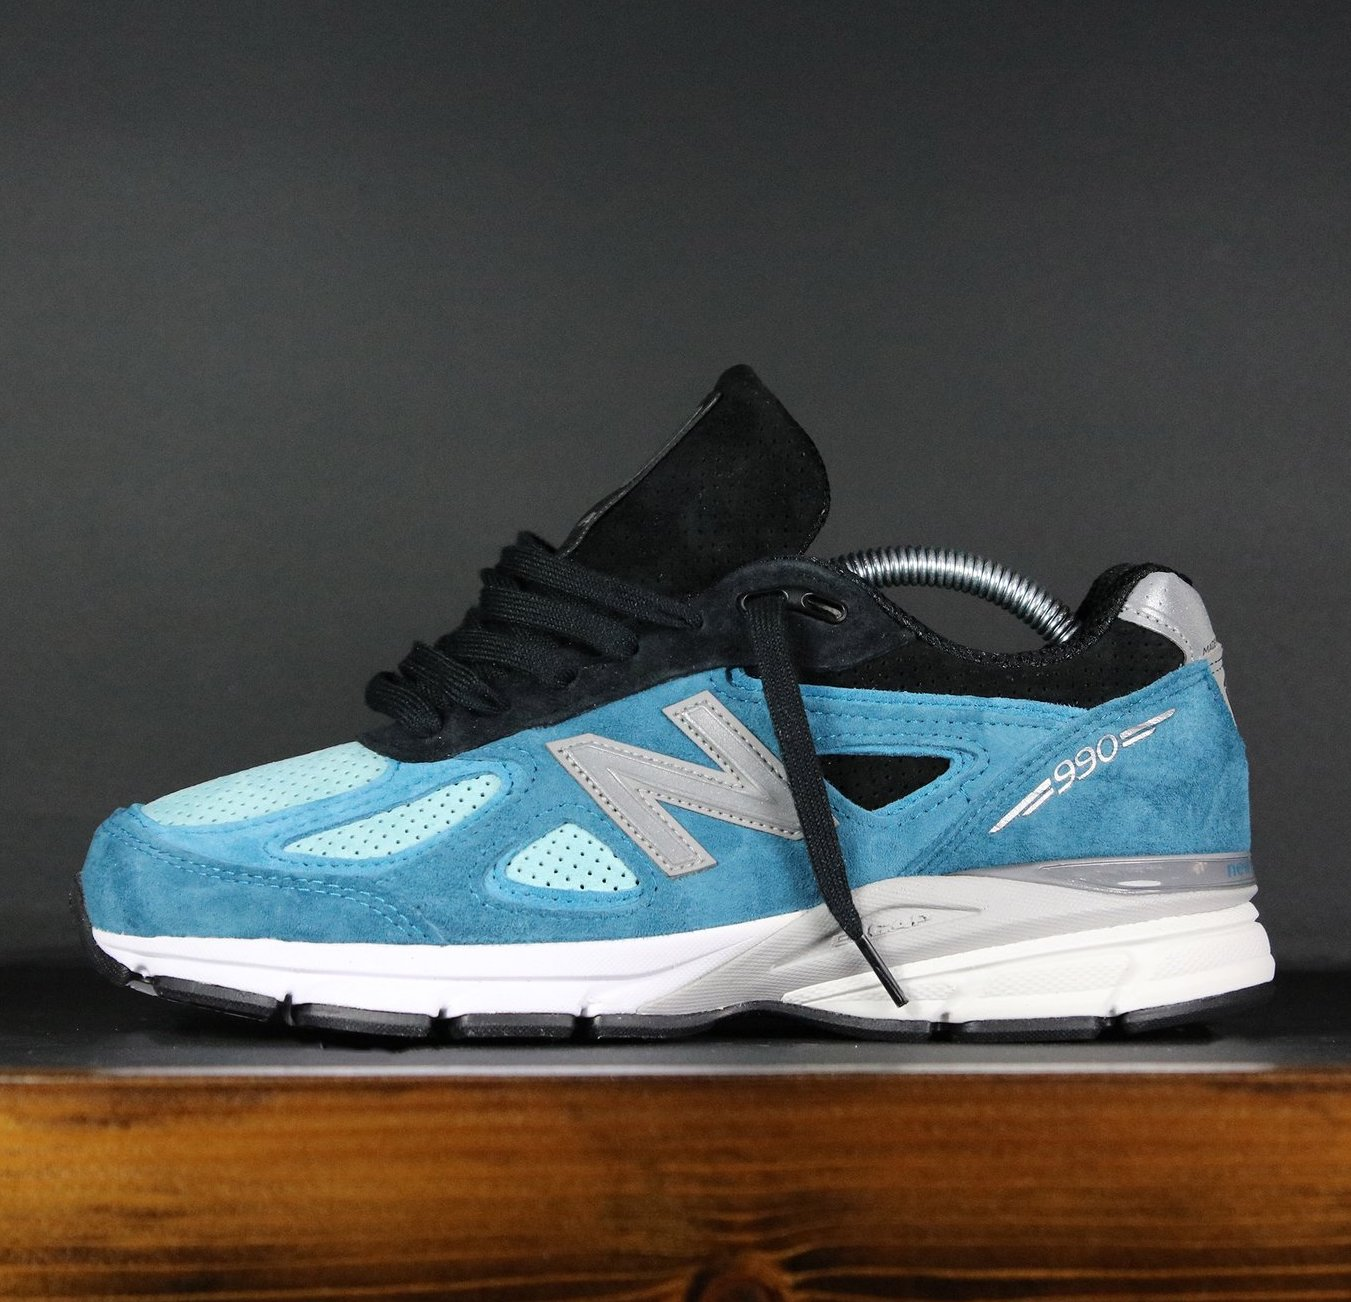 lowest price 16e95 ec387 On Sale: New Balance 990v4